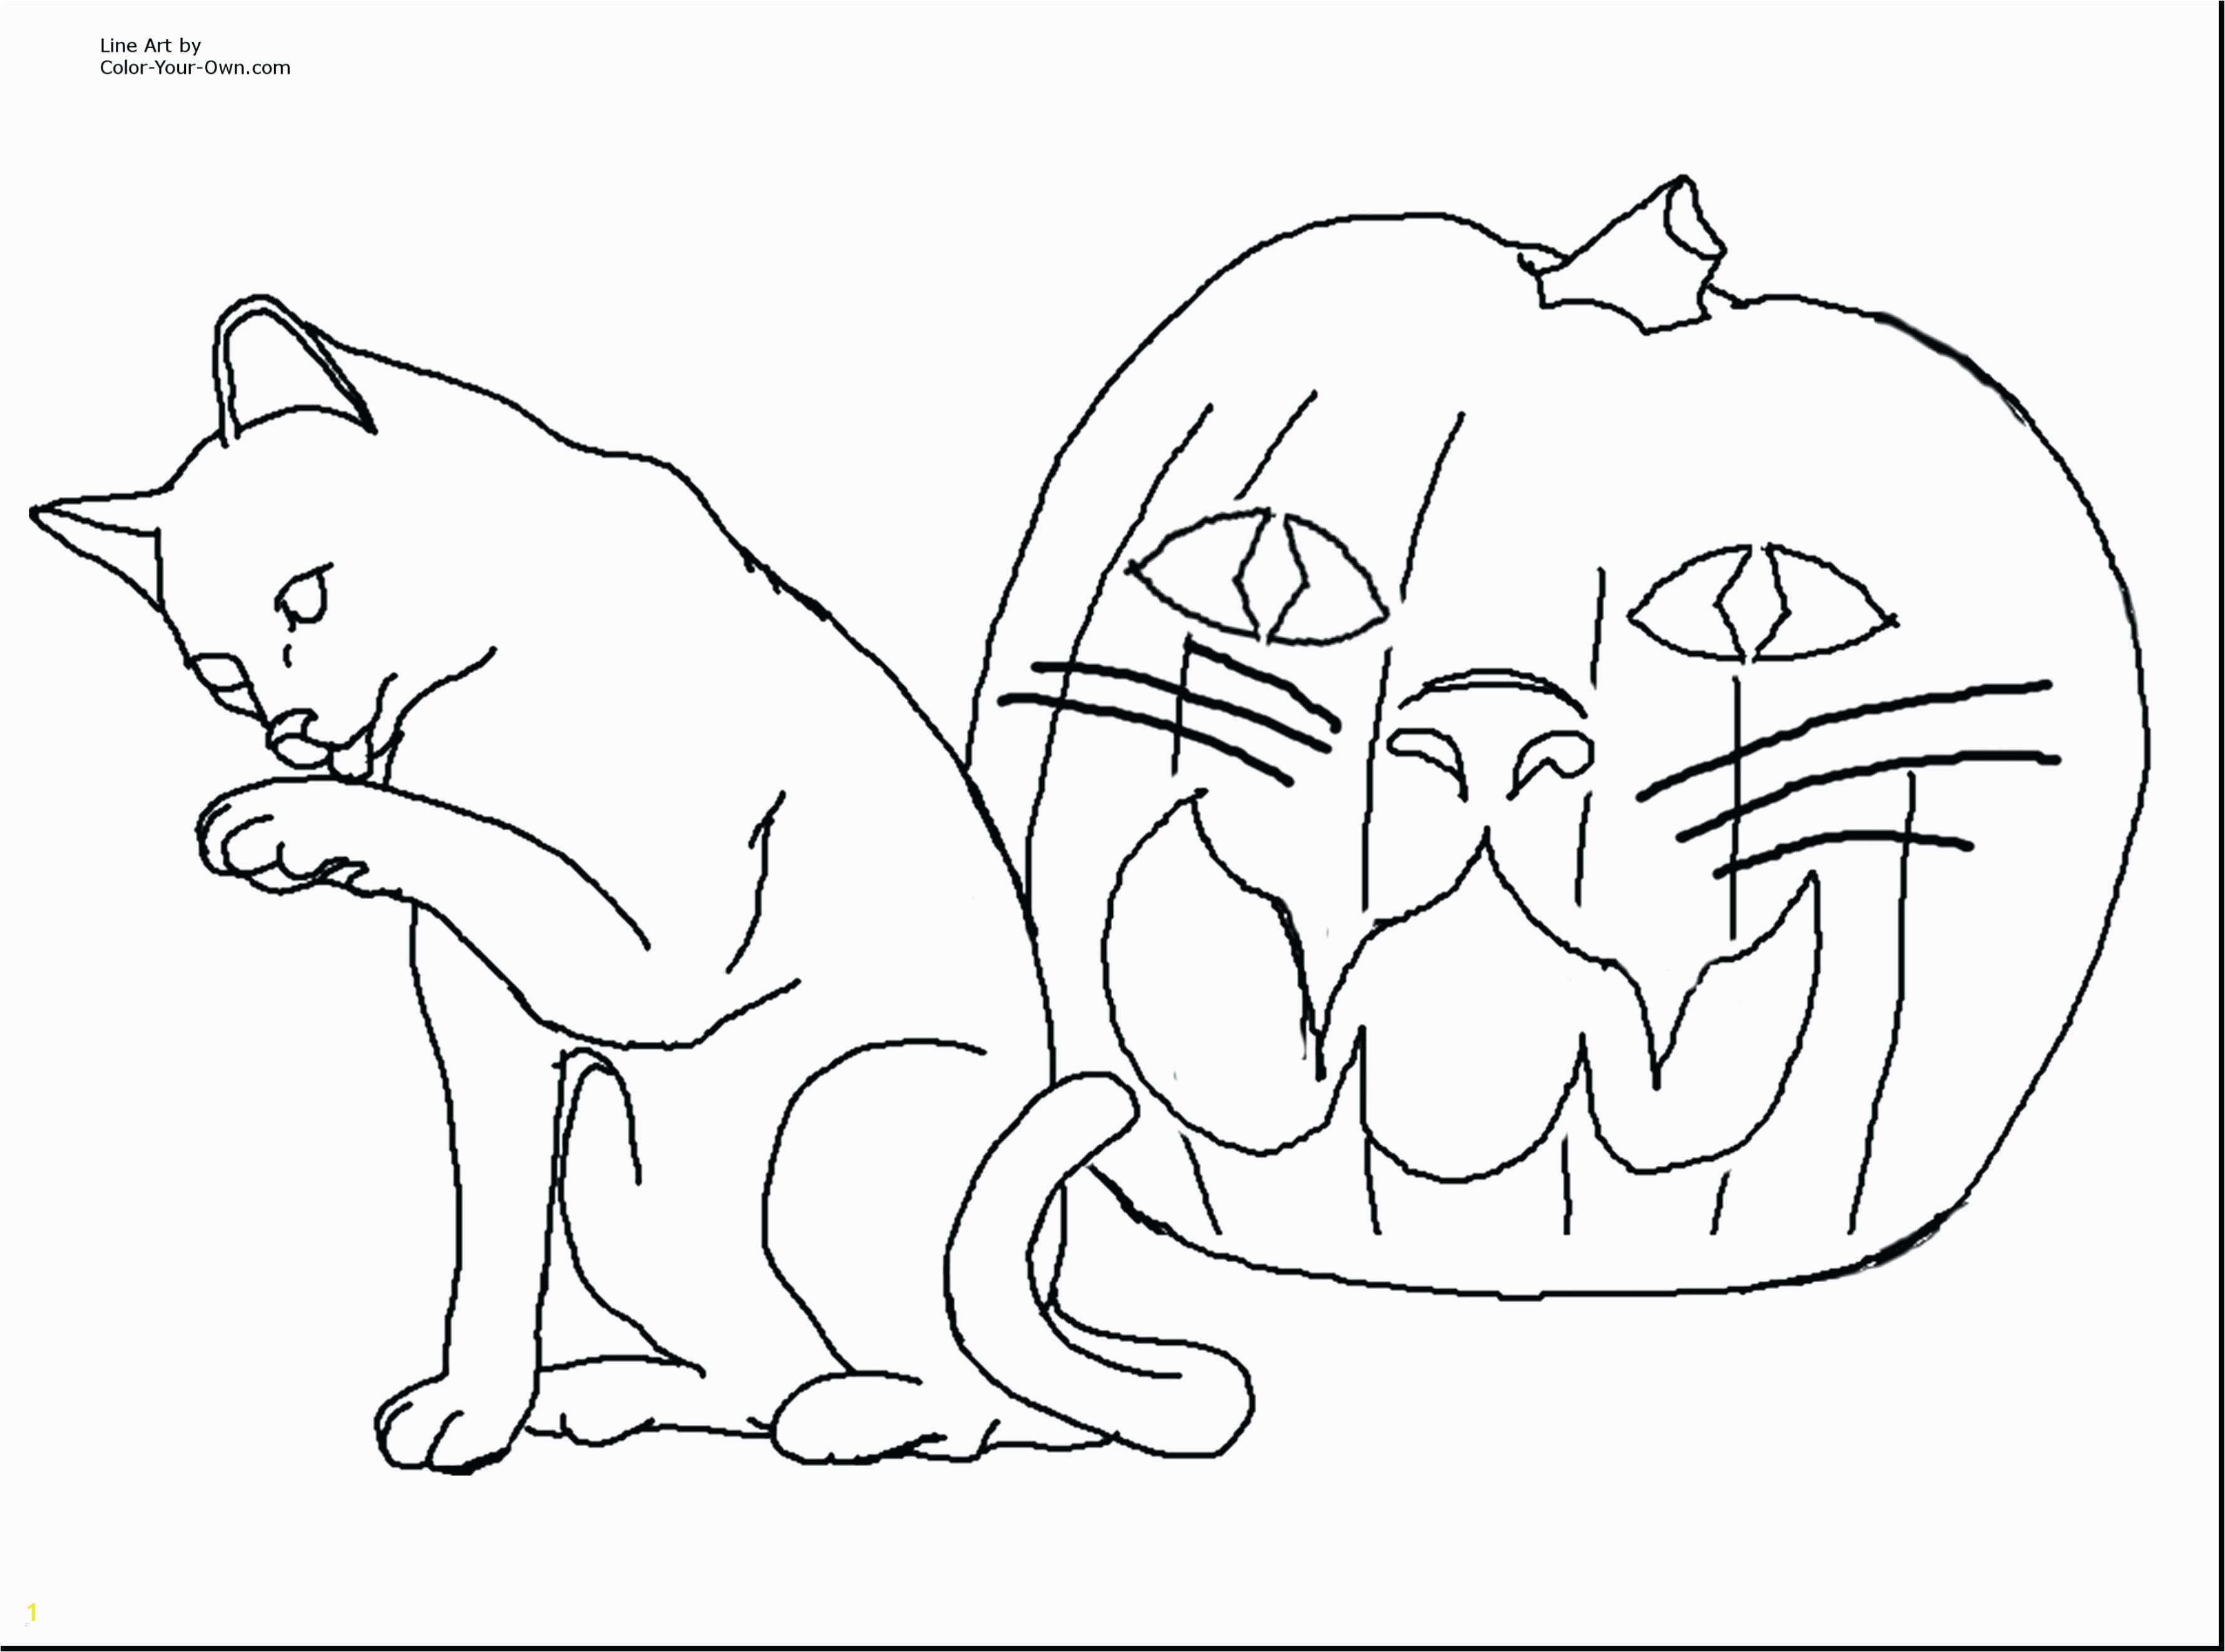 Zoo Animals Coloring Pages Luxury Free Coloring Pages Animals Printable Inspirational Cool Od Dog Ruva